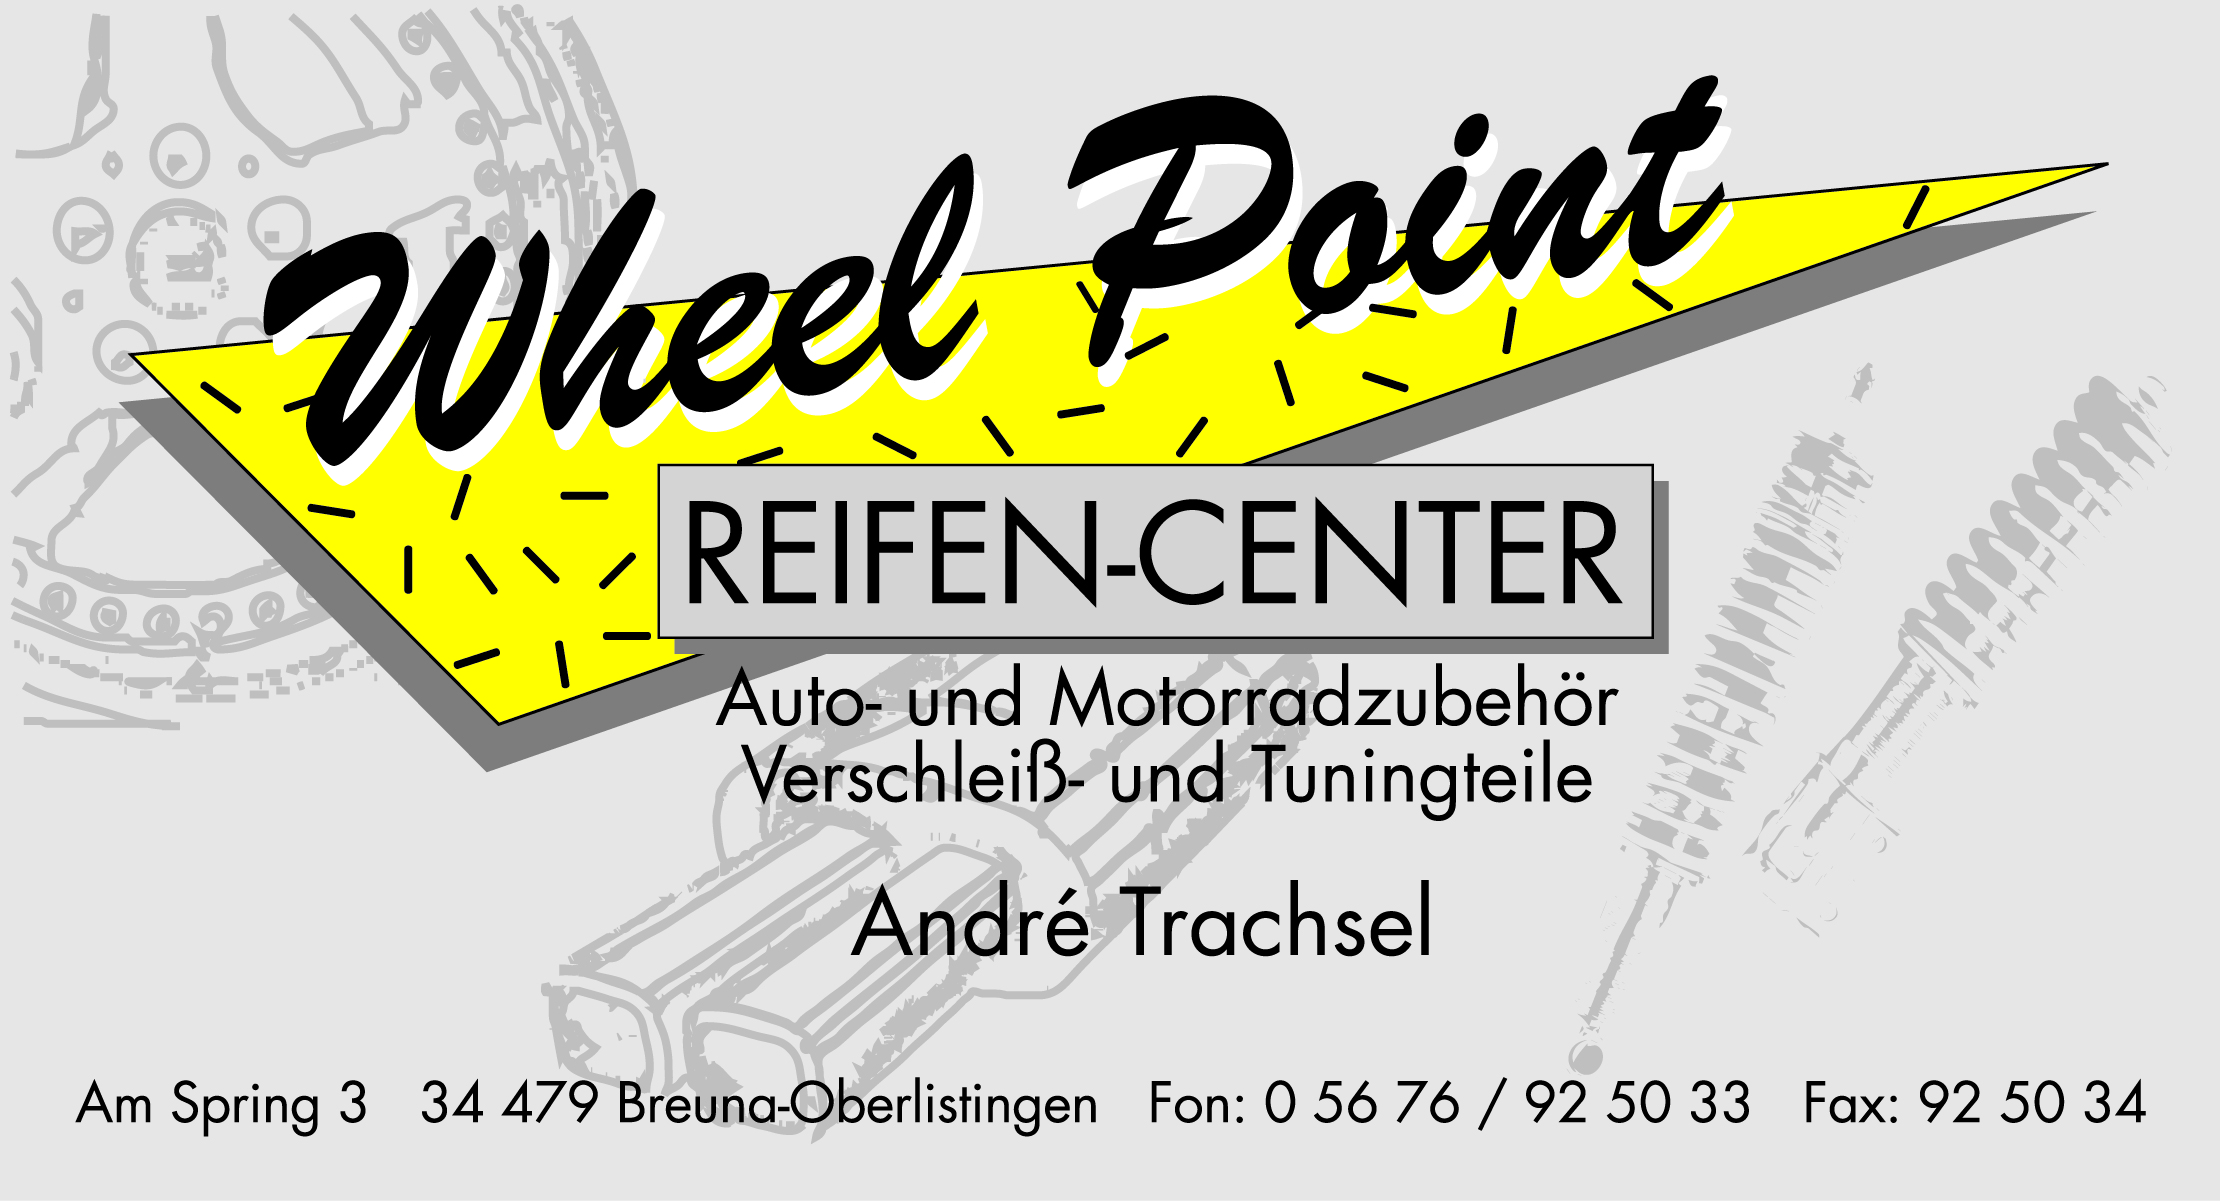 Wheelpoint Reifen-Center